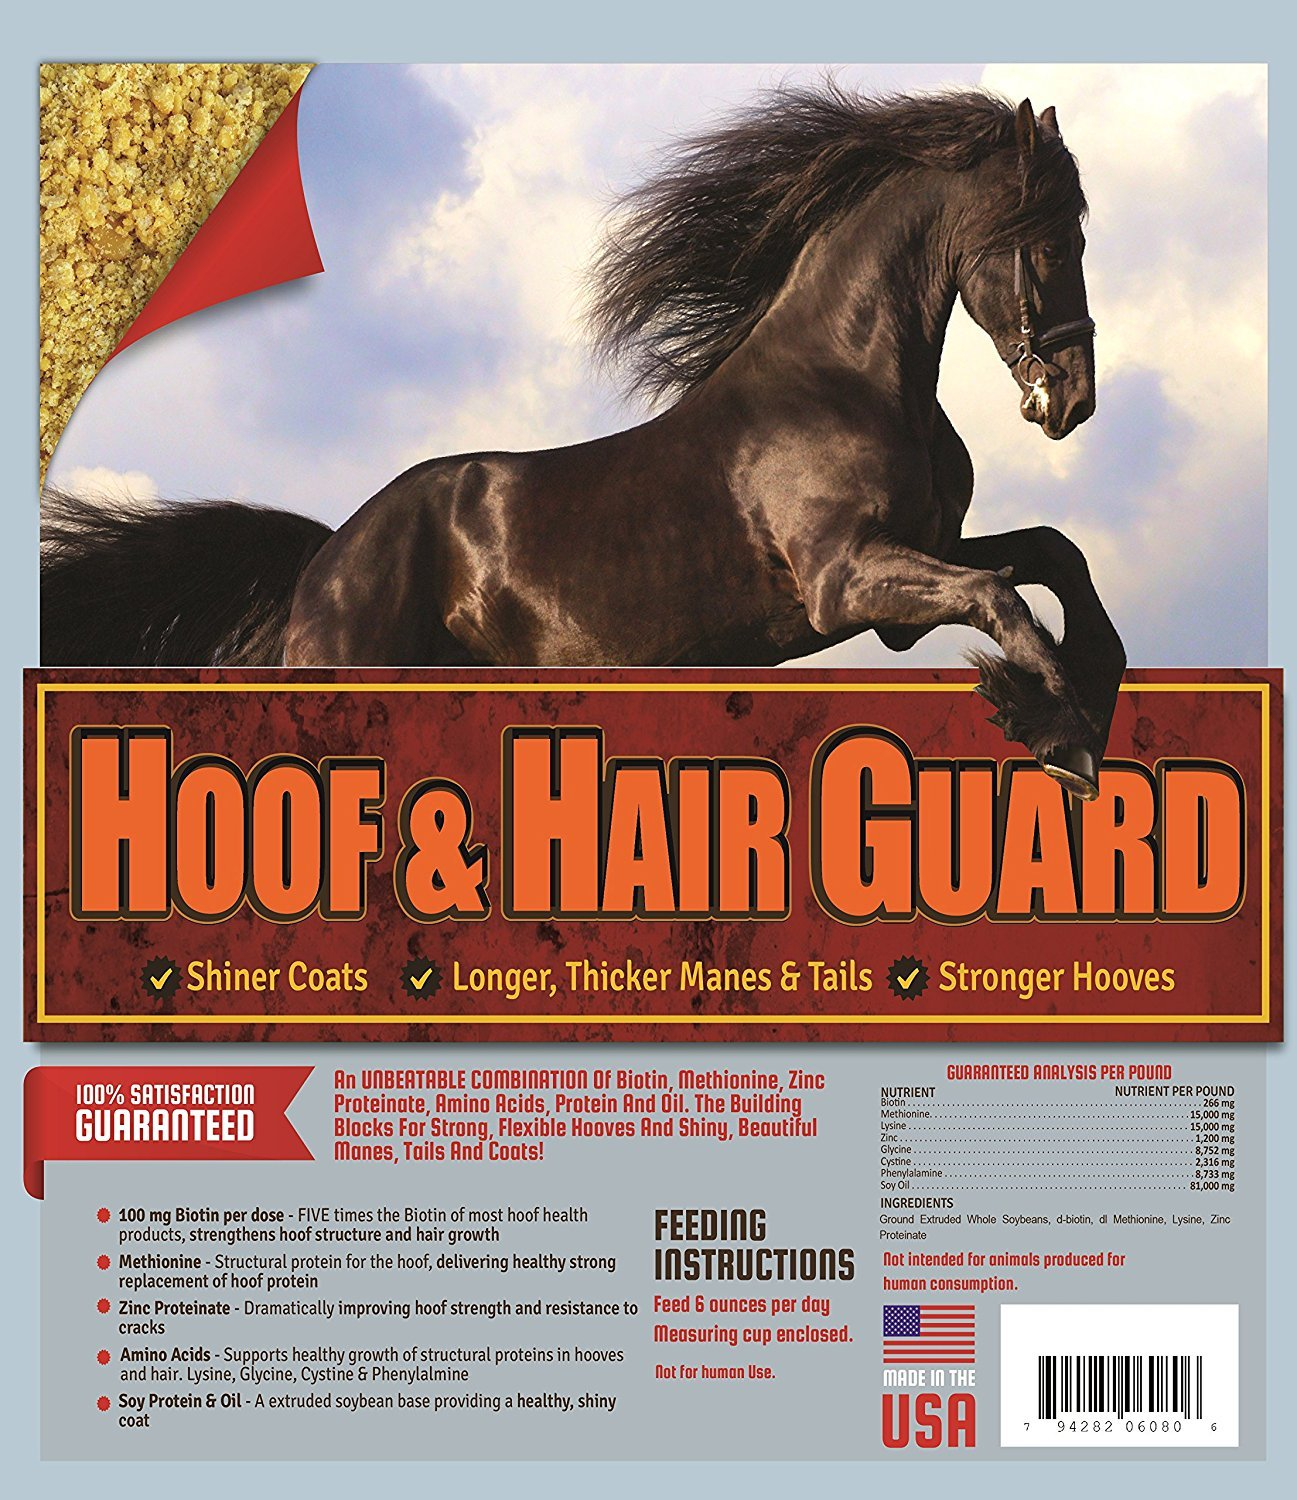 Horse Guard HOOF & HAIR GUARD EQUINE HOOF SUPPLEMENT AND EQUINE COAT SUPPLEMENT WITH AMINO ACIDS, BIOTIN, METHIONINE & SOY OIL, 10 lb by Horse Guard (Image #6)